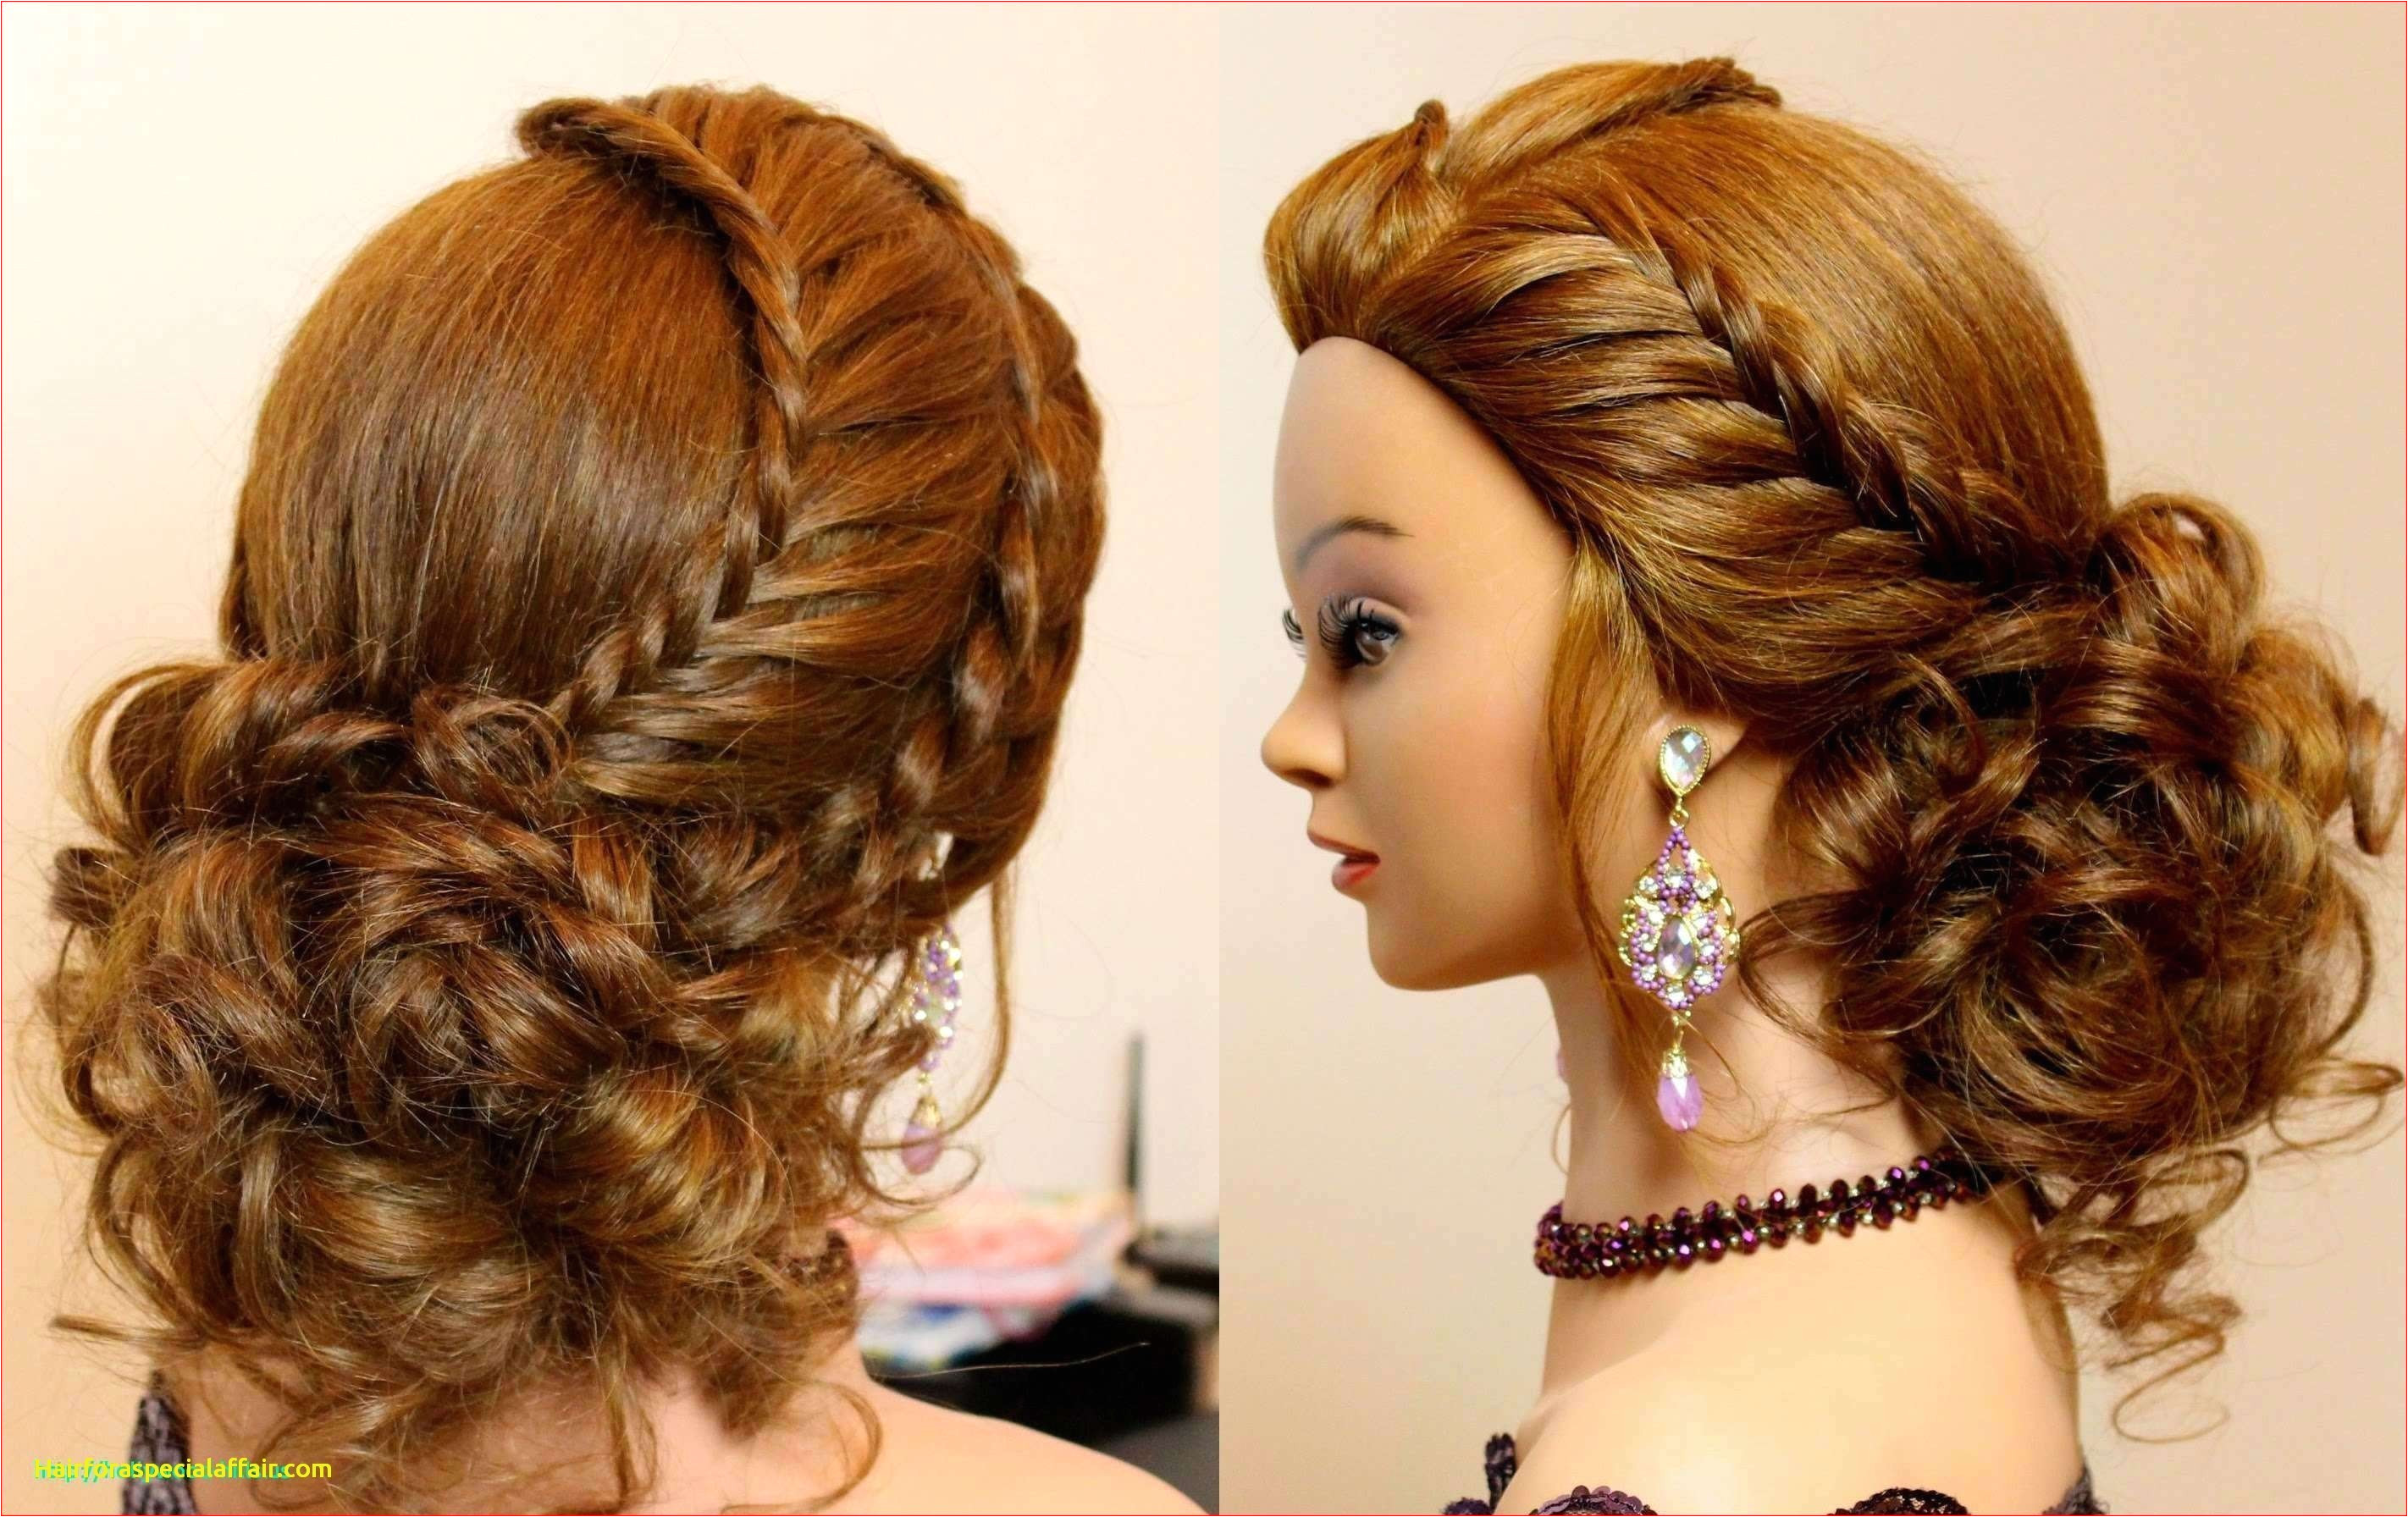 Braid Hairstyles for Girls Easy Elegant some Cute Hairstyles Cute Best Men Hairstyle 0d Afrohair Eu